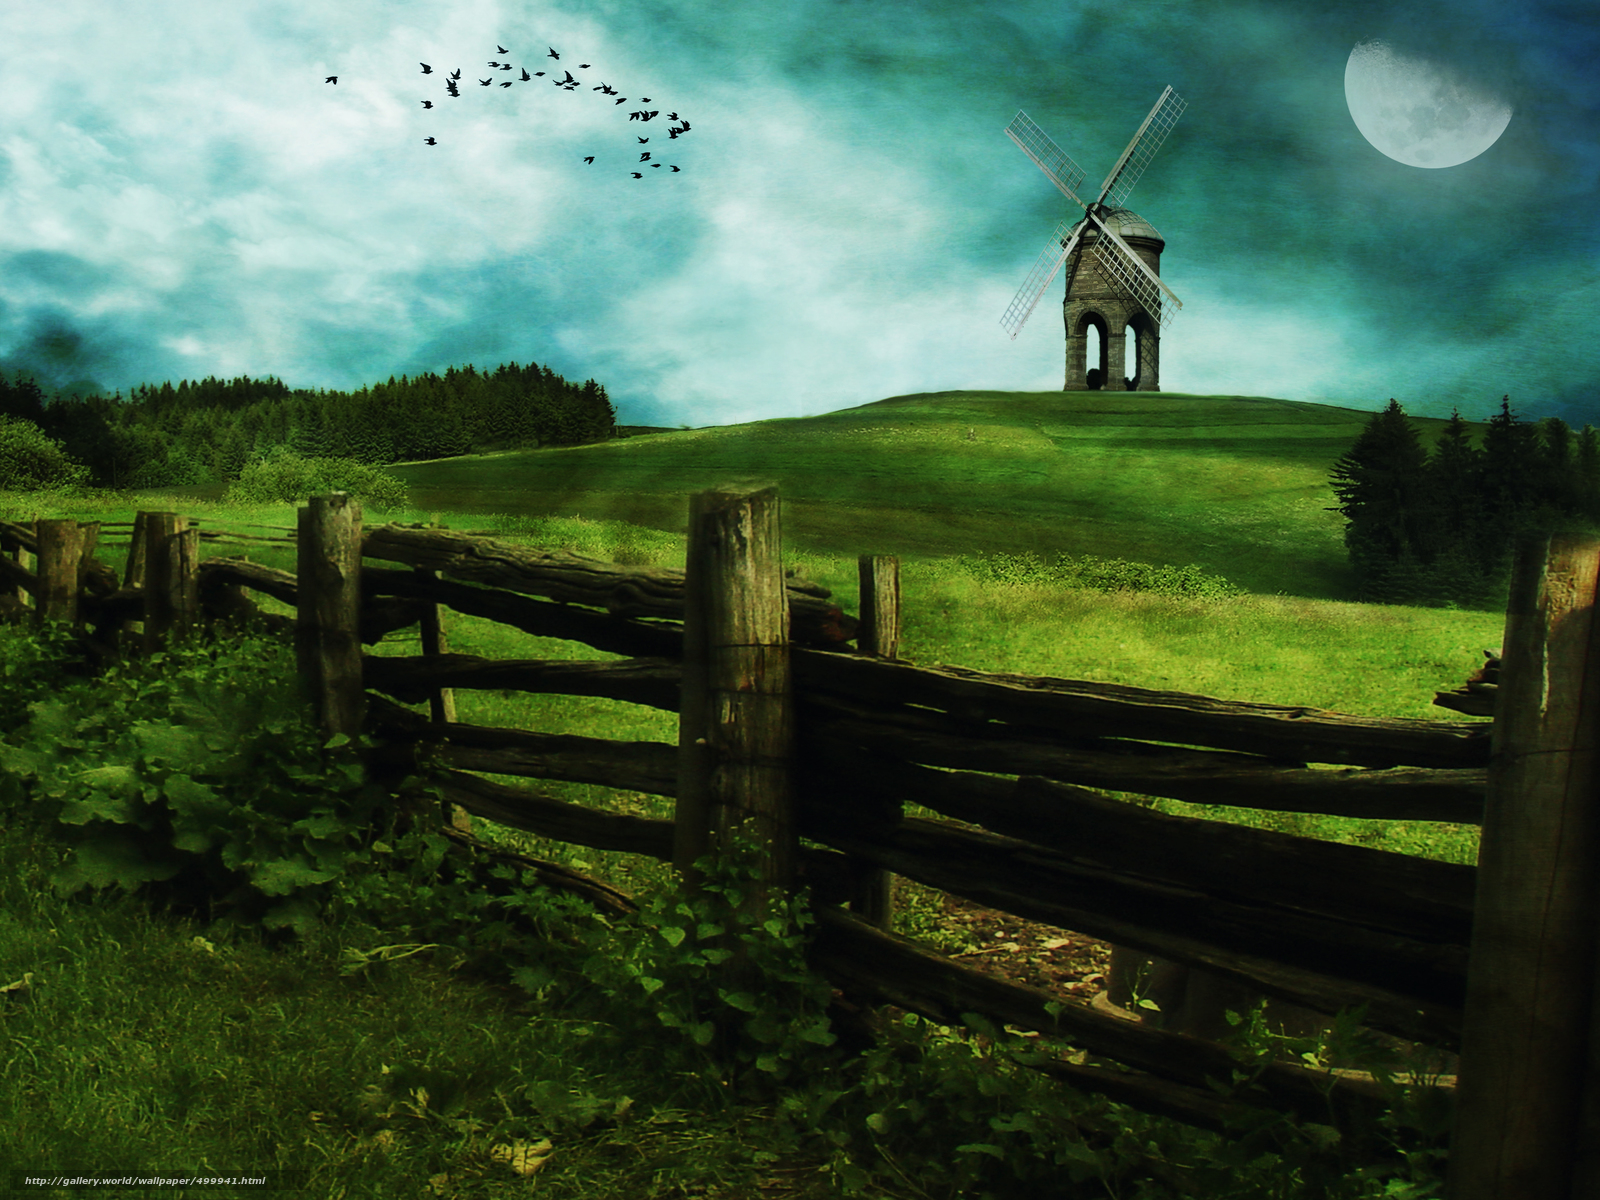 Download wallpaper field mill clouds fence free desktop wallpaper in the resolution 4000x3000 - Wallpaper 3000 x 4000 ...